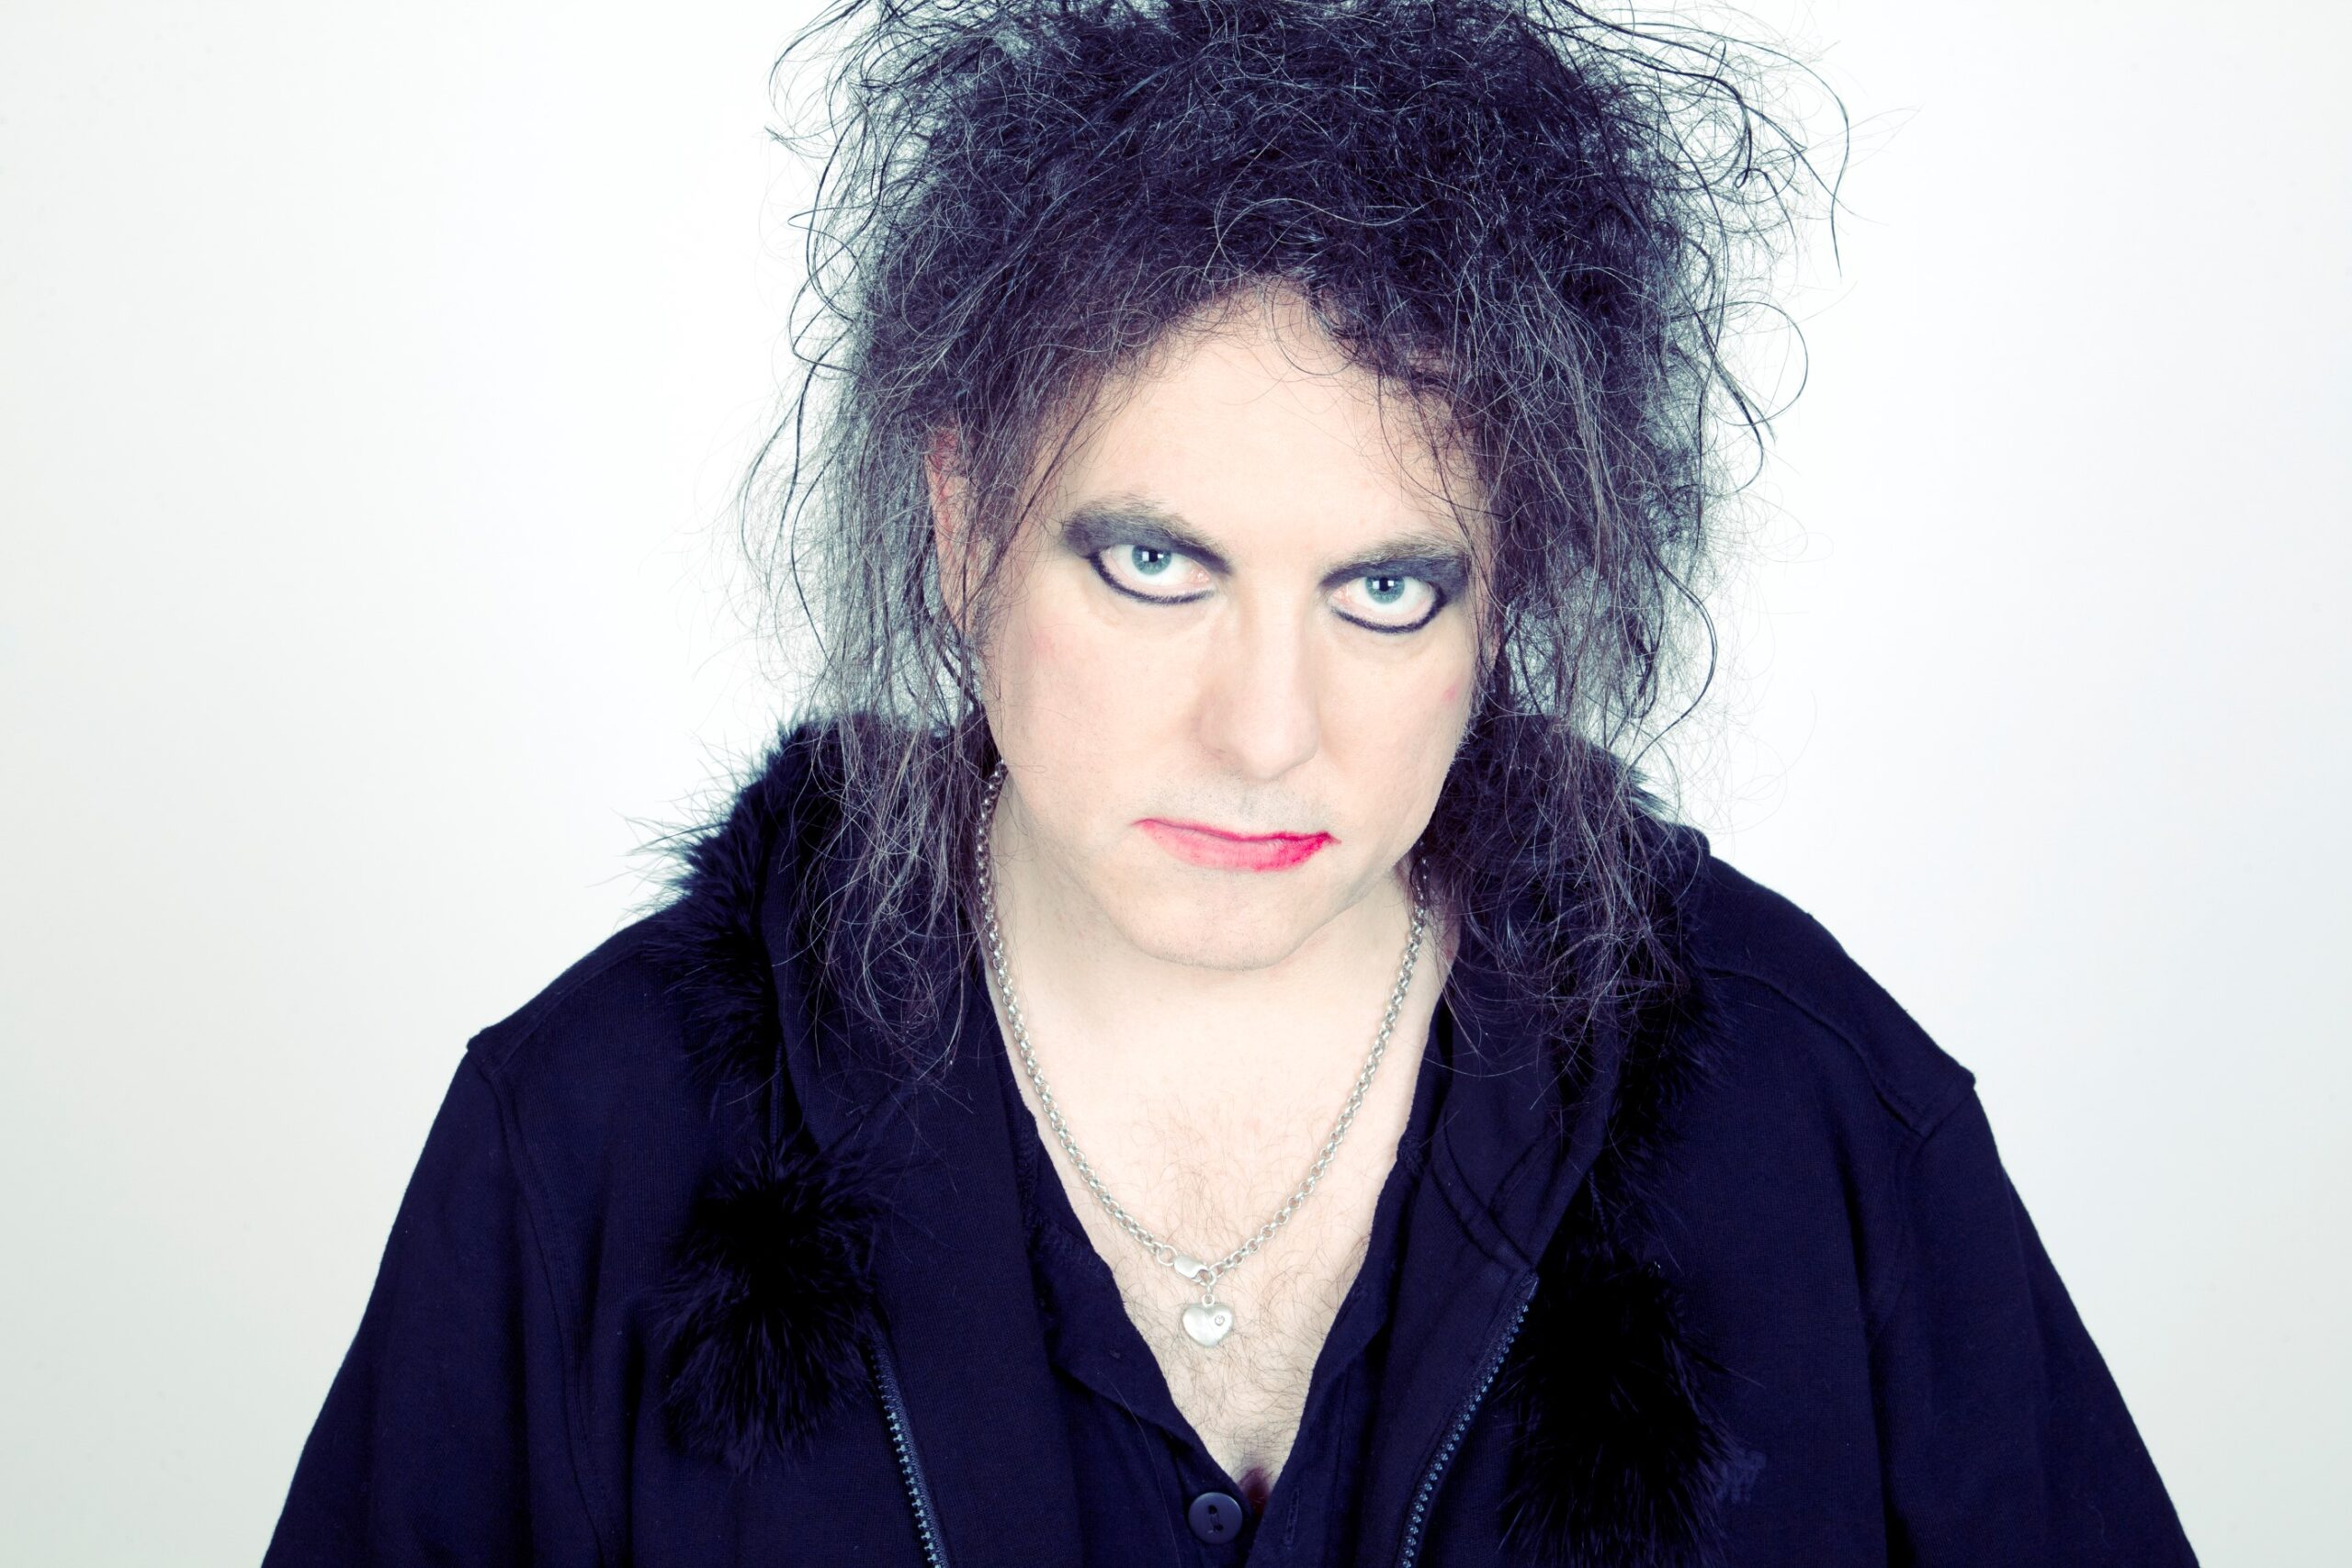 Robert Smith selling special edition artwork for charity